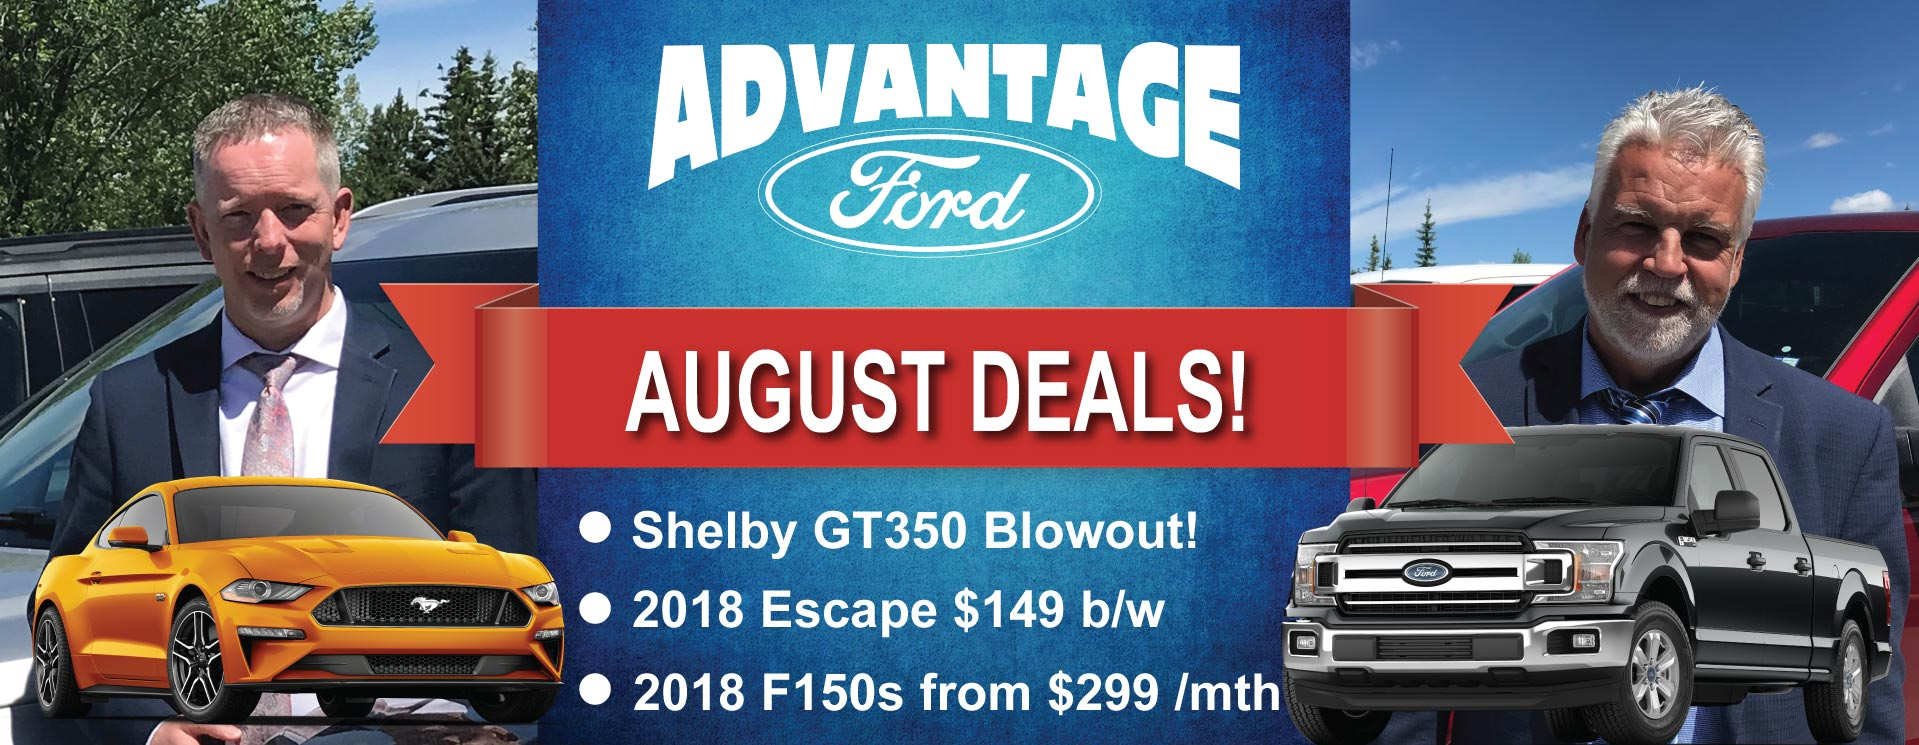 August Savings at Advantage Ford